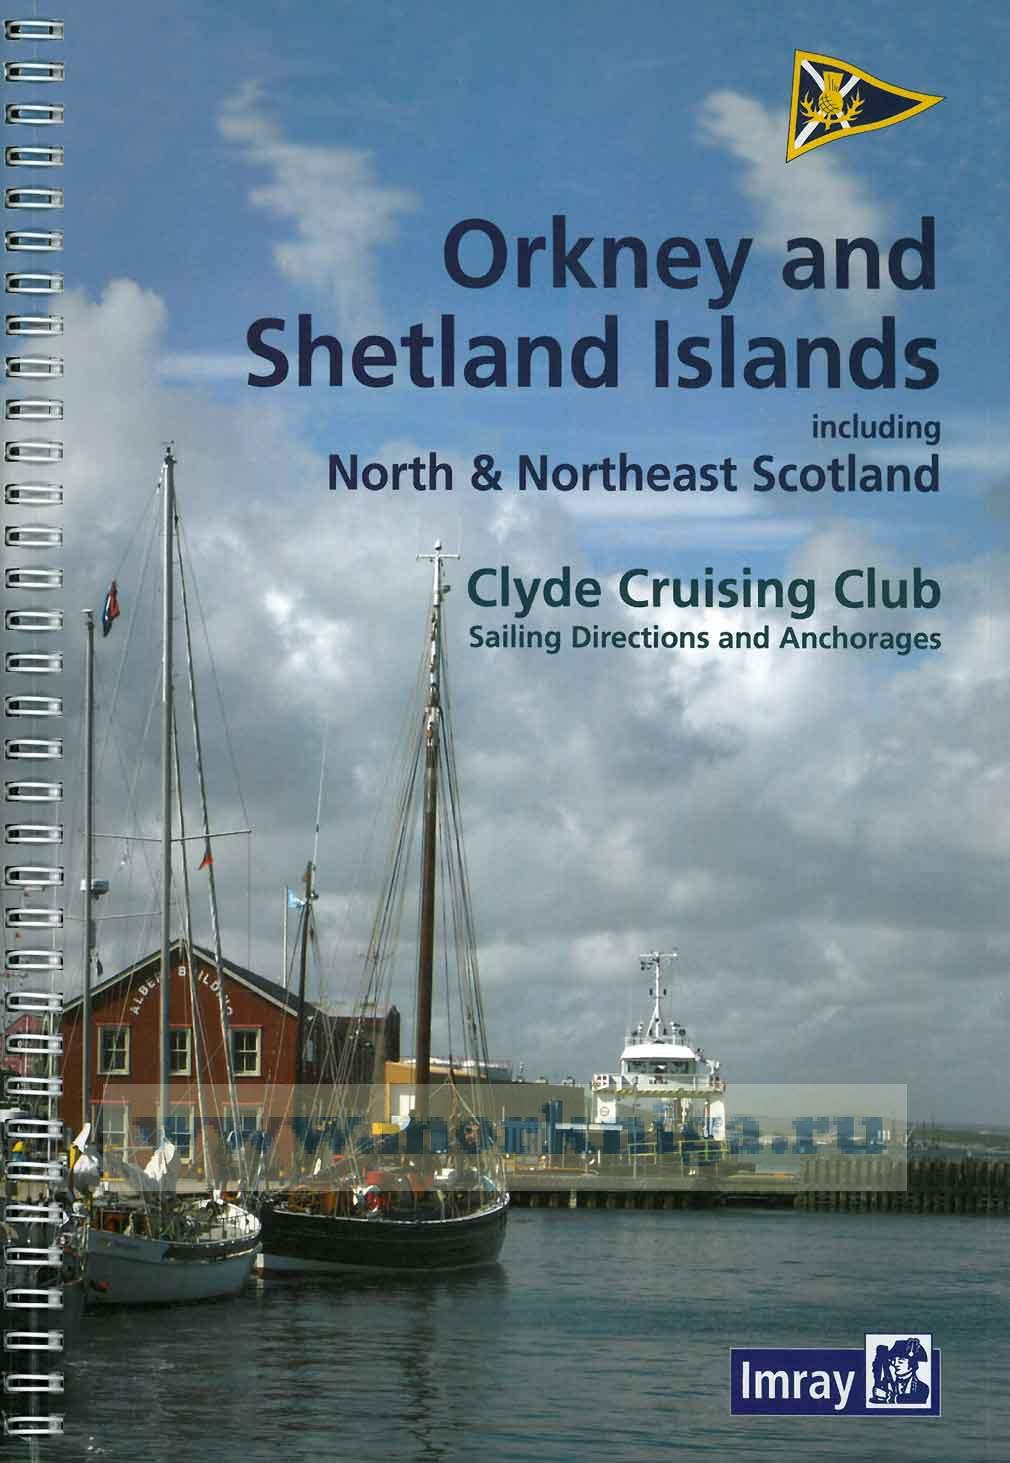 Clyde Cruising Club Sailing Directions & Anchorages Orkney Islands and Scotland islands including North & North East Scotland  Шетланские и Окнейские острова